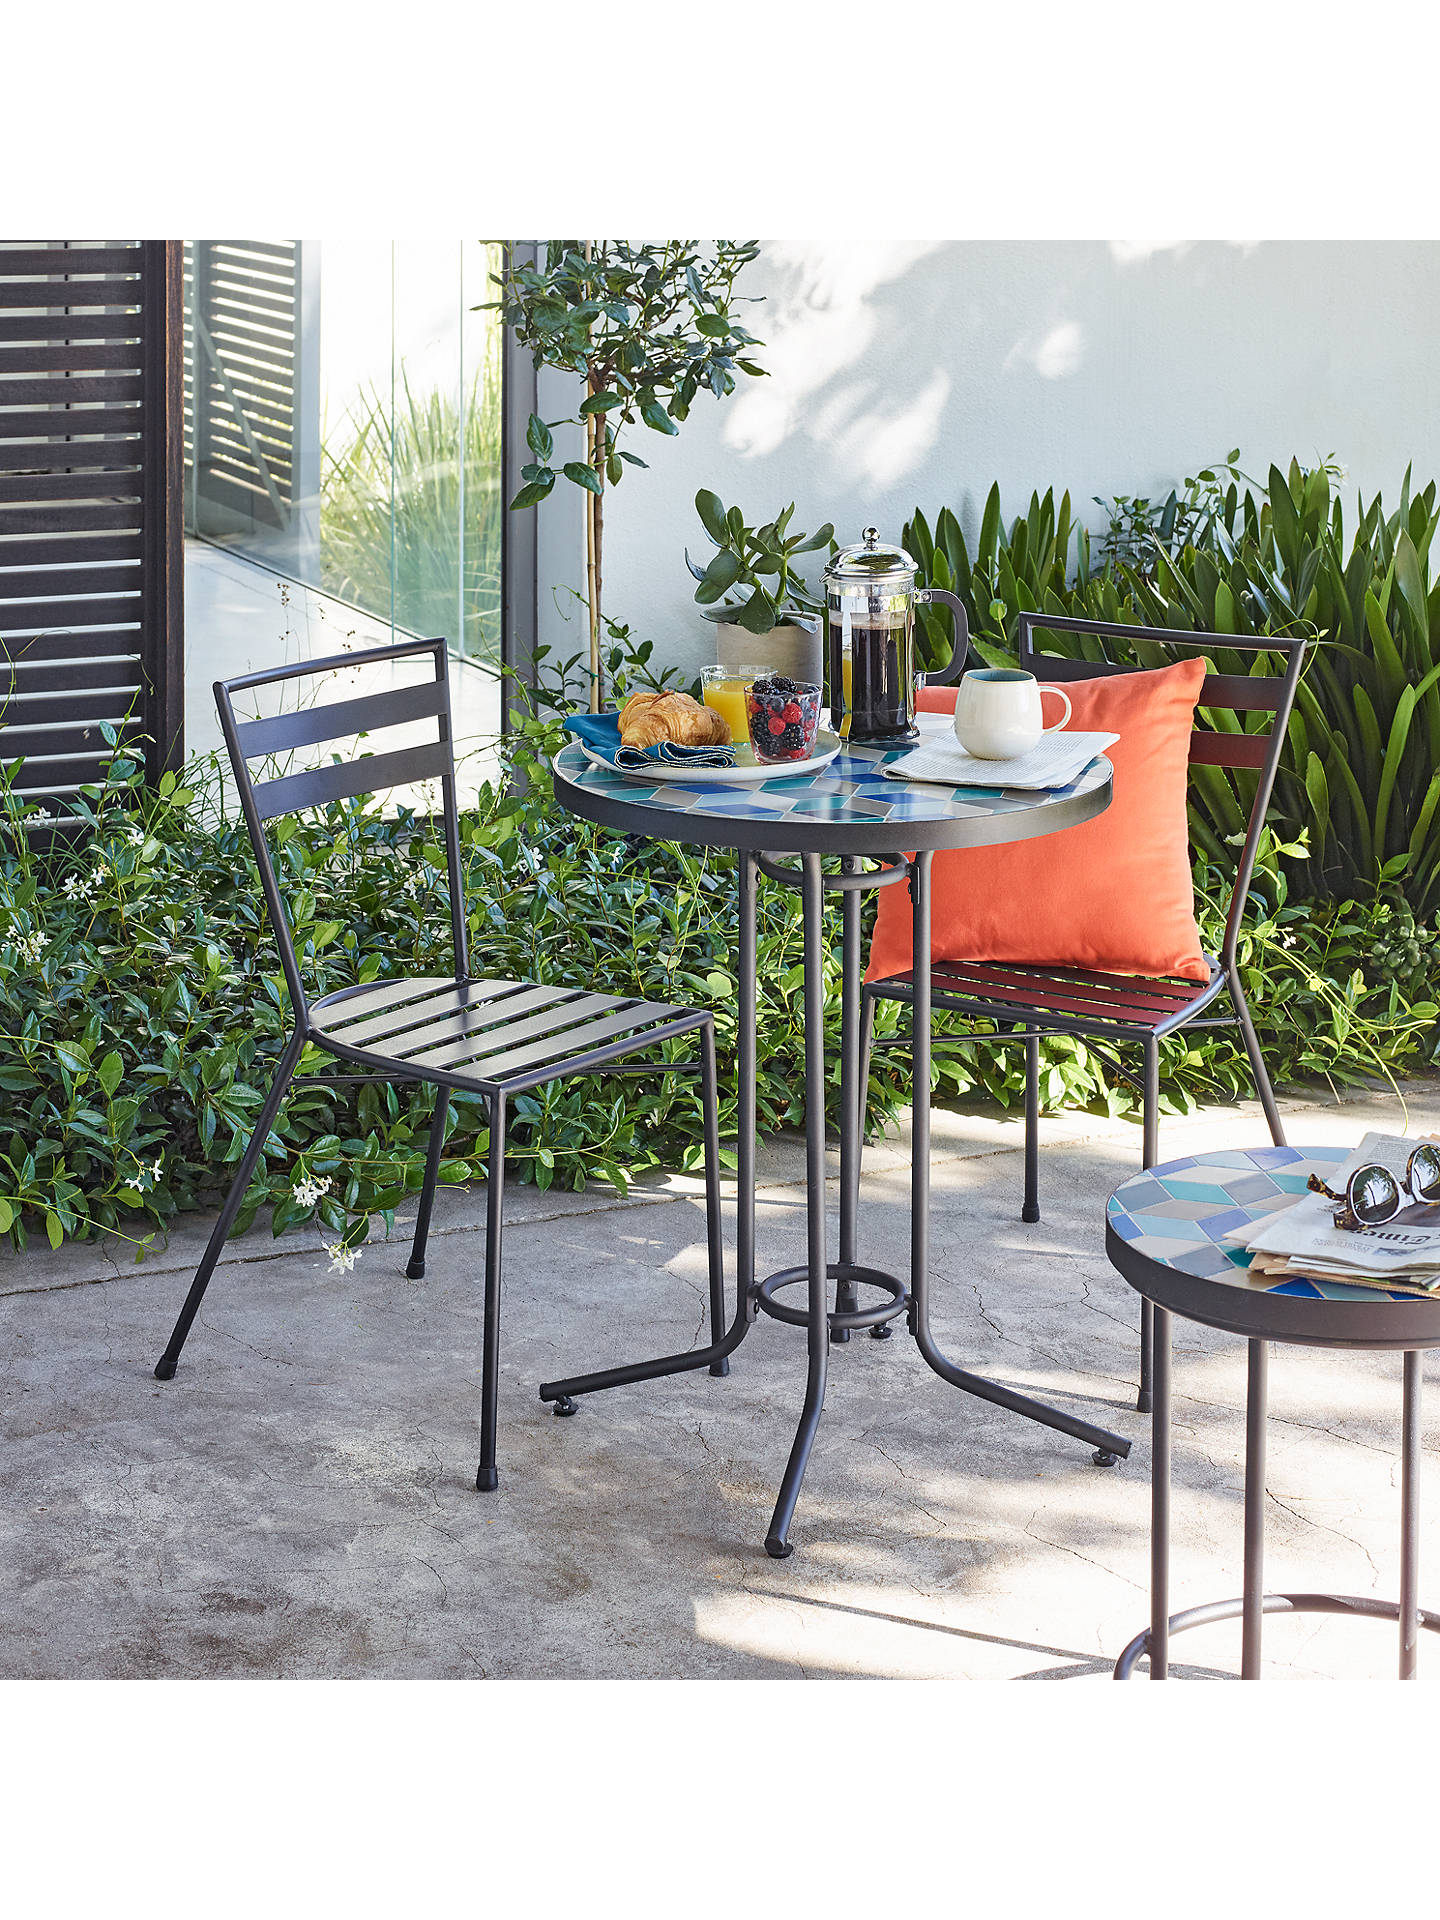 Buy john lewis partners suri 2 seater mosaic bistro garden table and chairs set